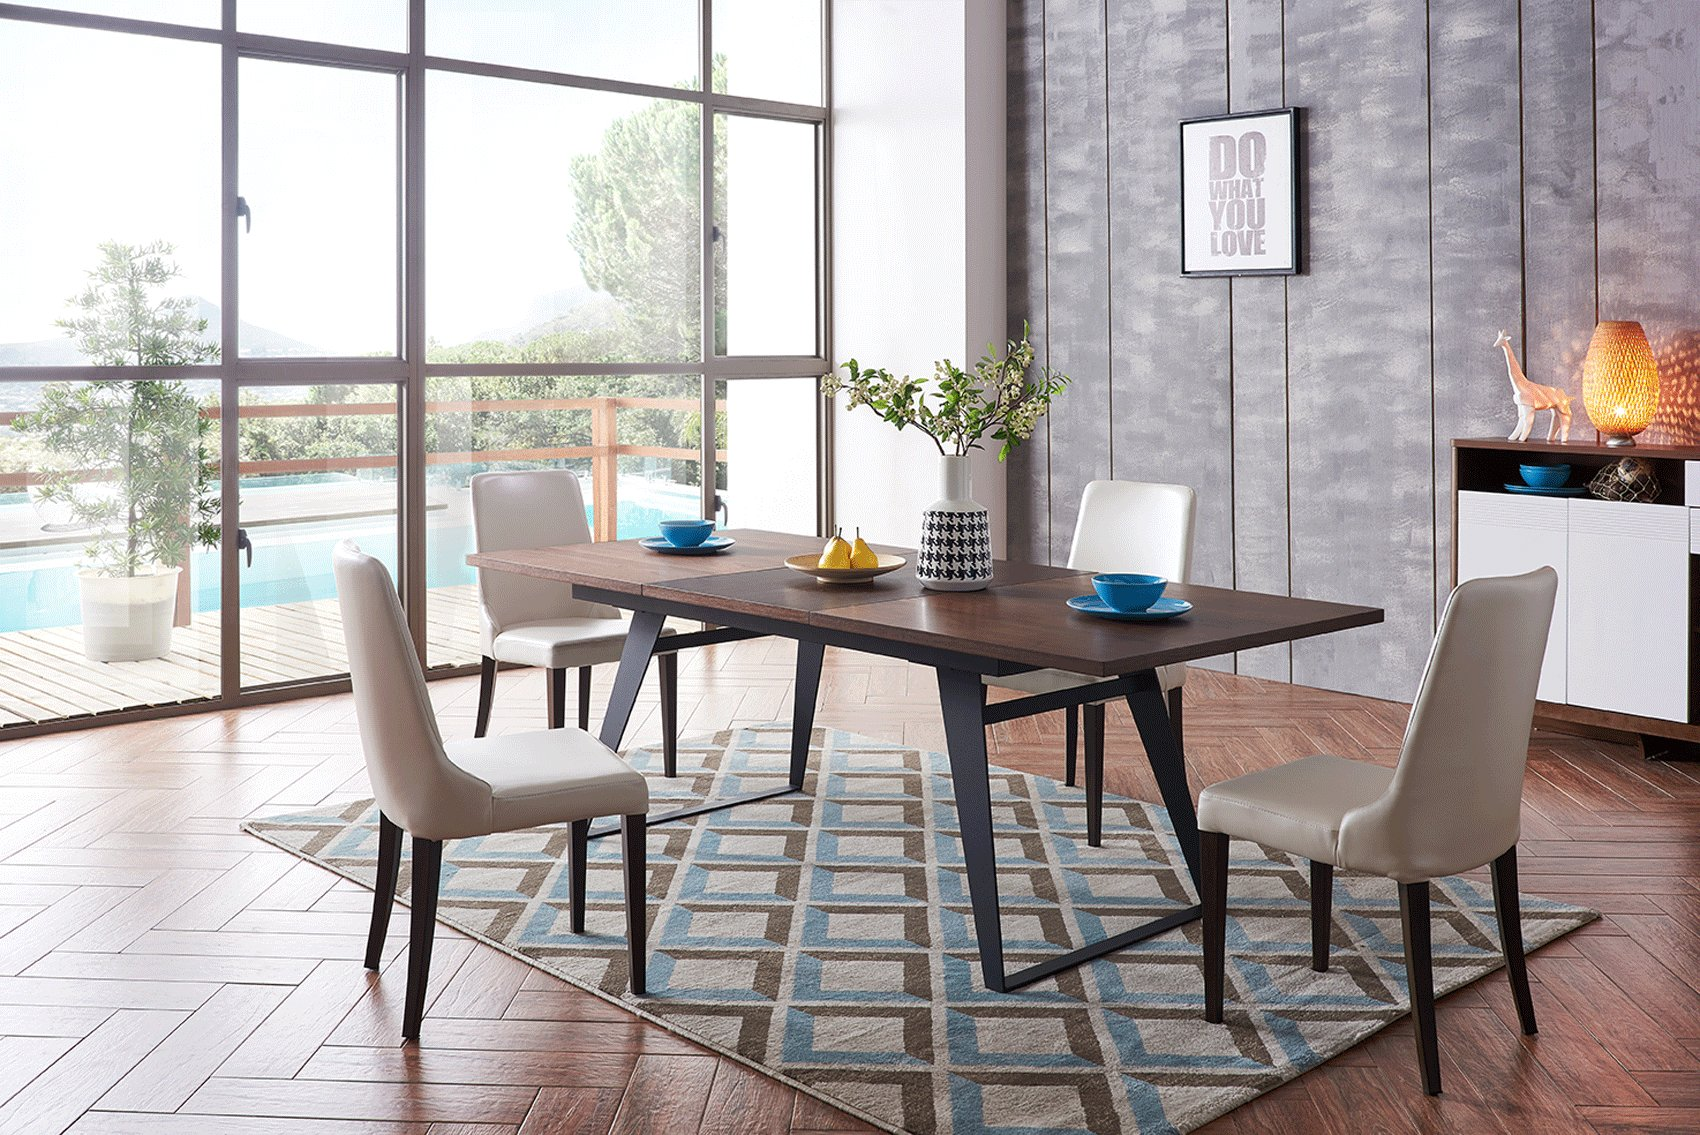 Contemporary Rectangular In Wood Modern Dining Table Sets Long Beach California Esf 1518 1640